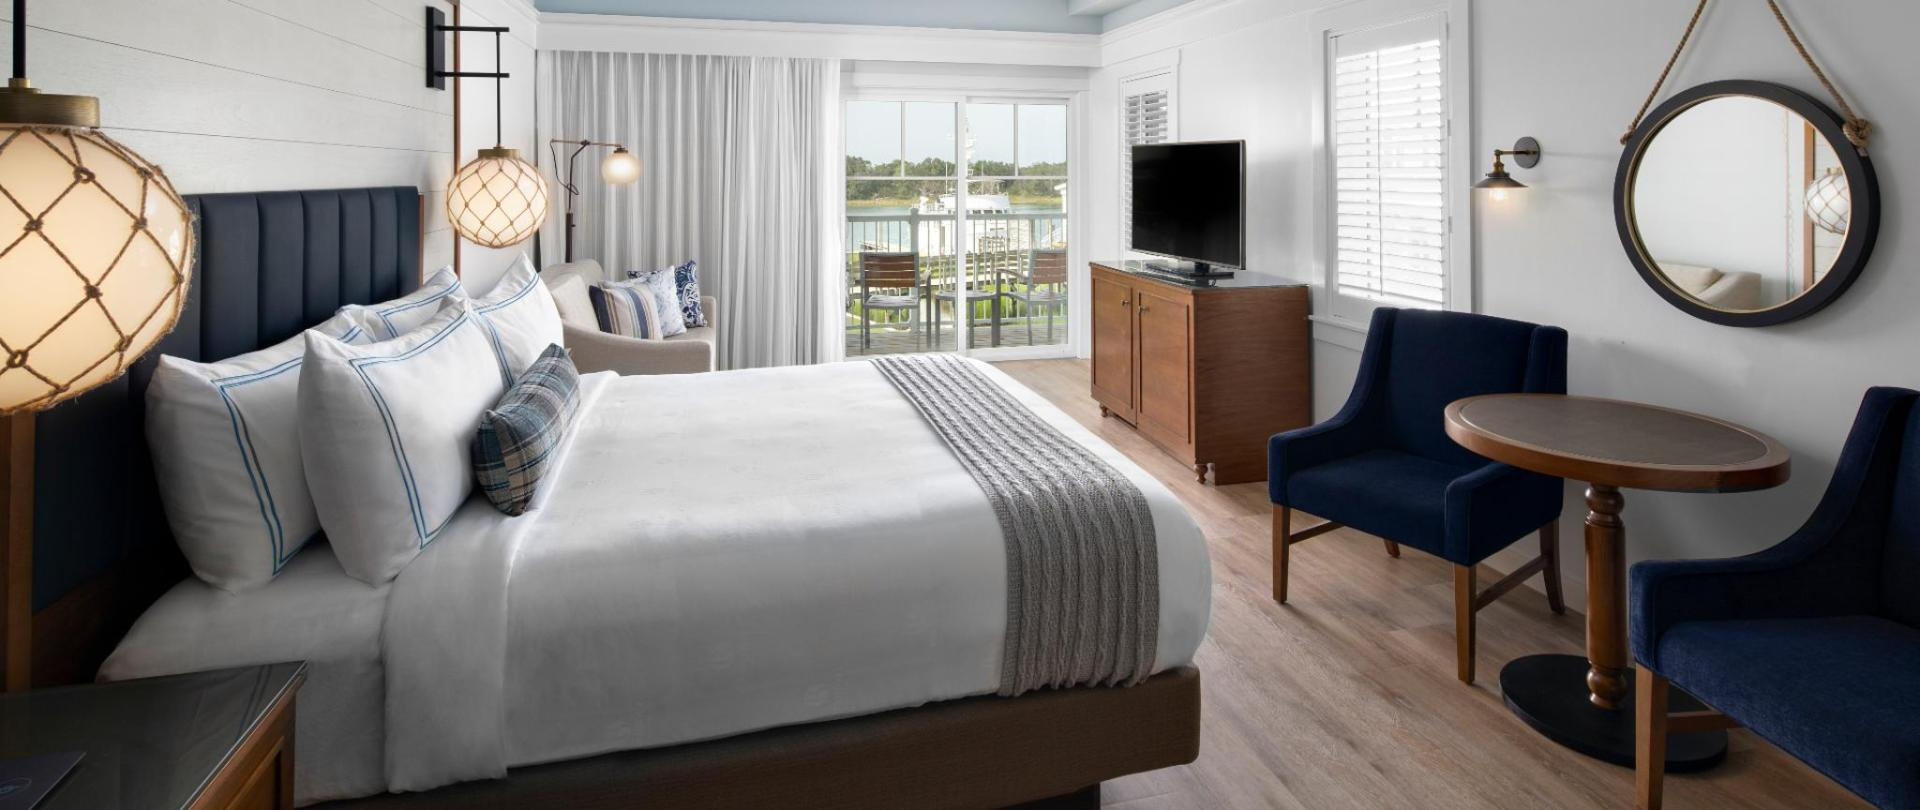 Beaufort Hotel NC, an Ascend Hotel Collection Member